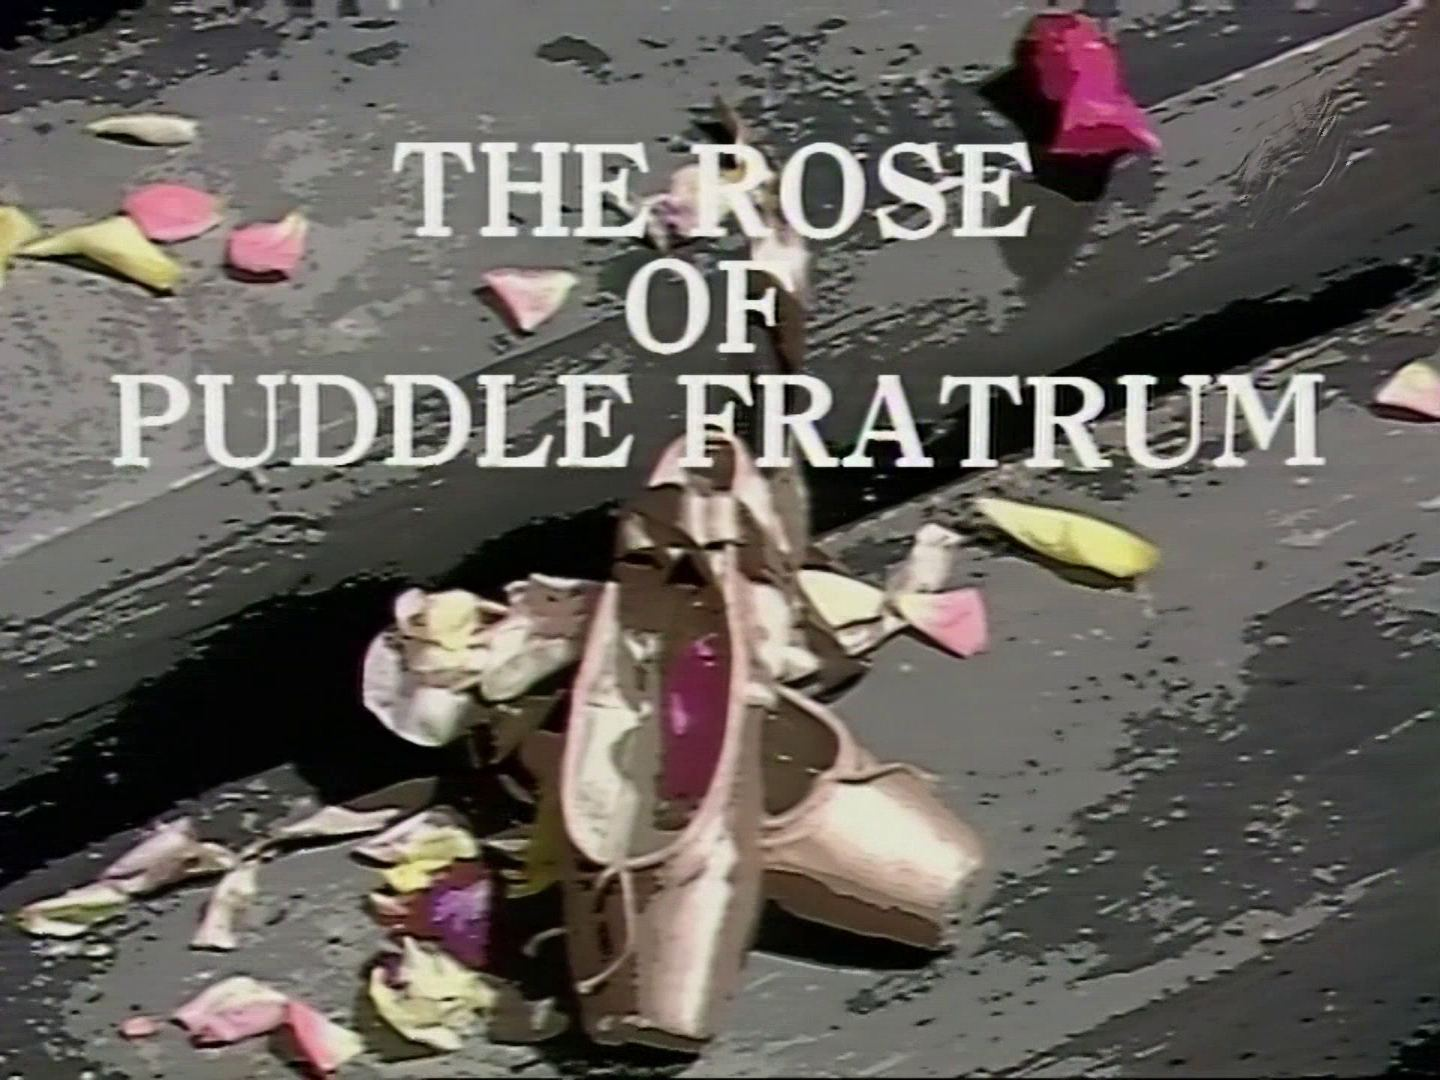 Main title from the 1978 'The Rose of Puddle Fratrum' episode of Shadows (1975-78) (1)